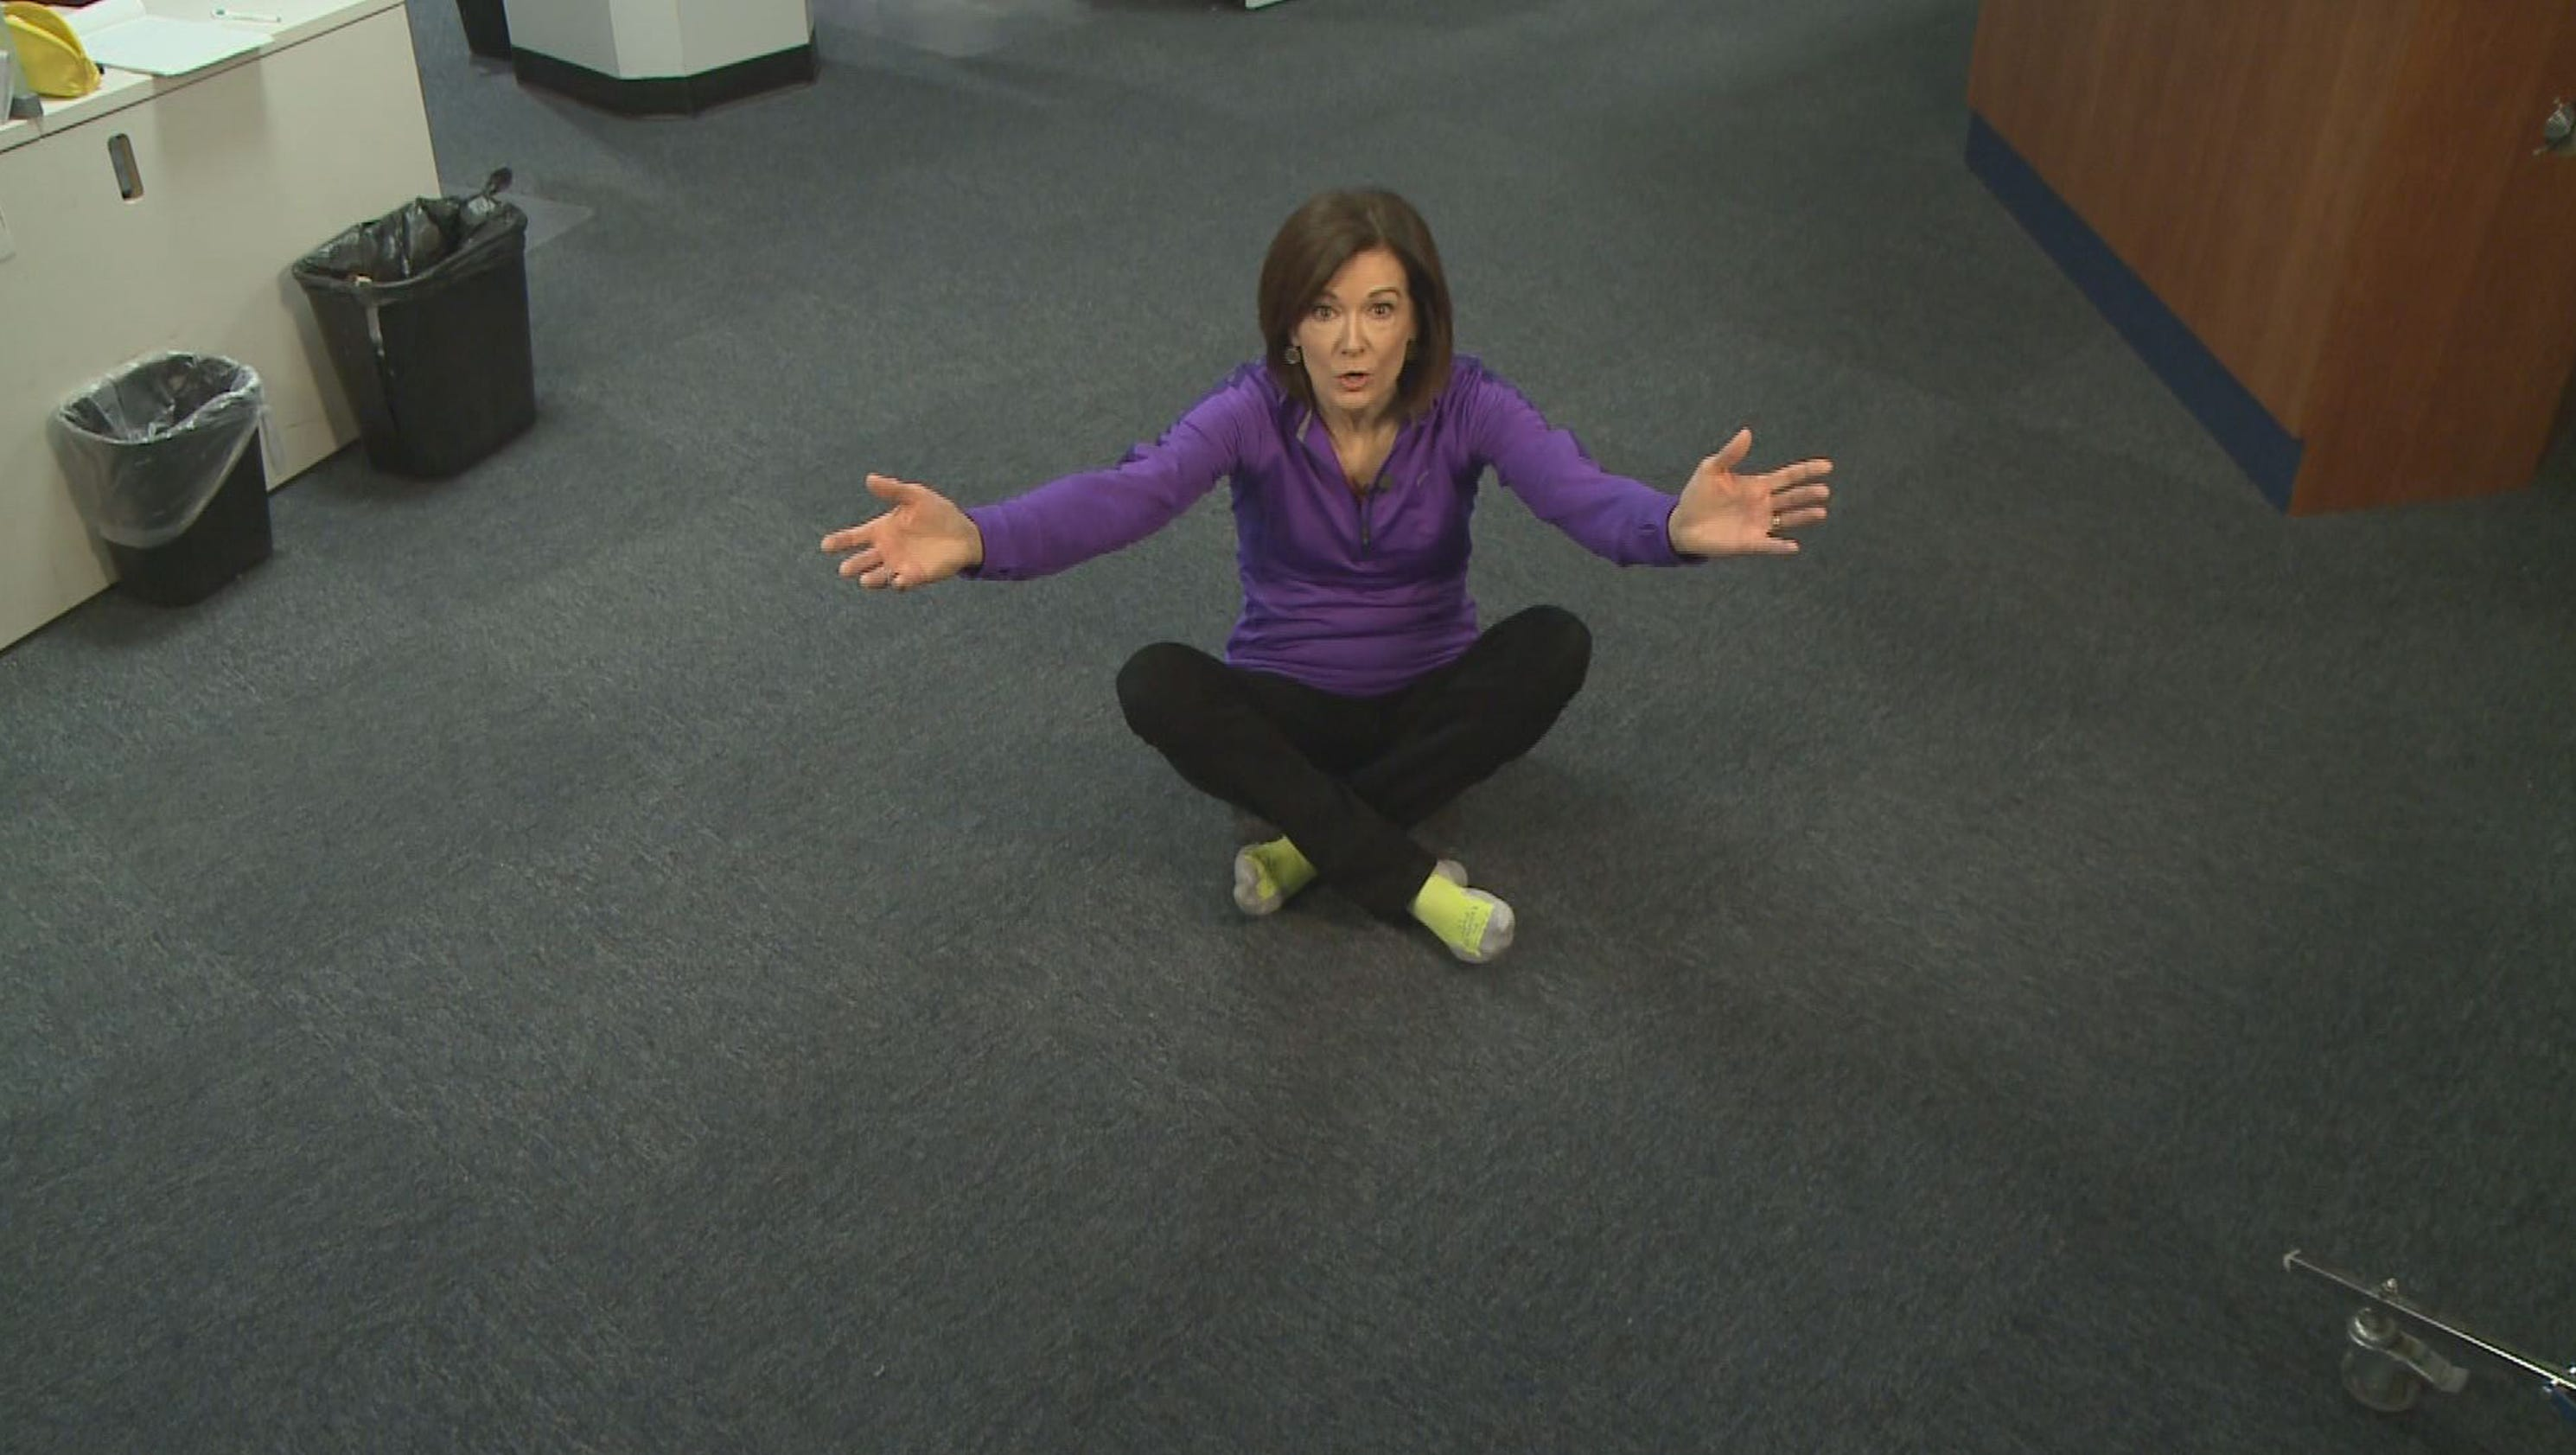 How long will you live Try the Sitting Rising Test